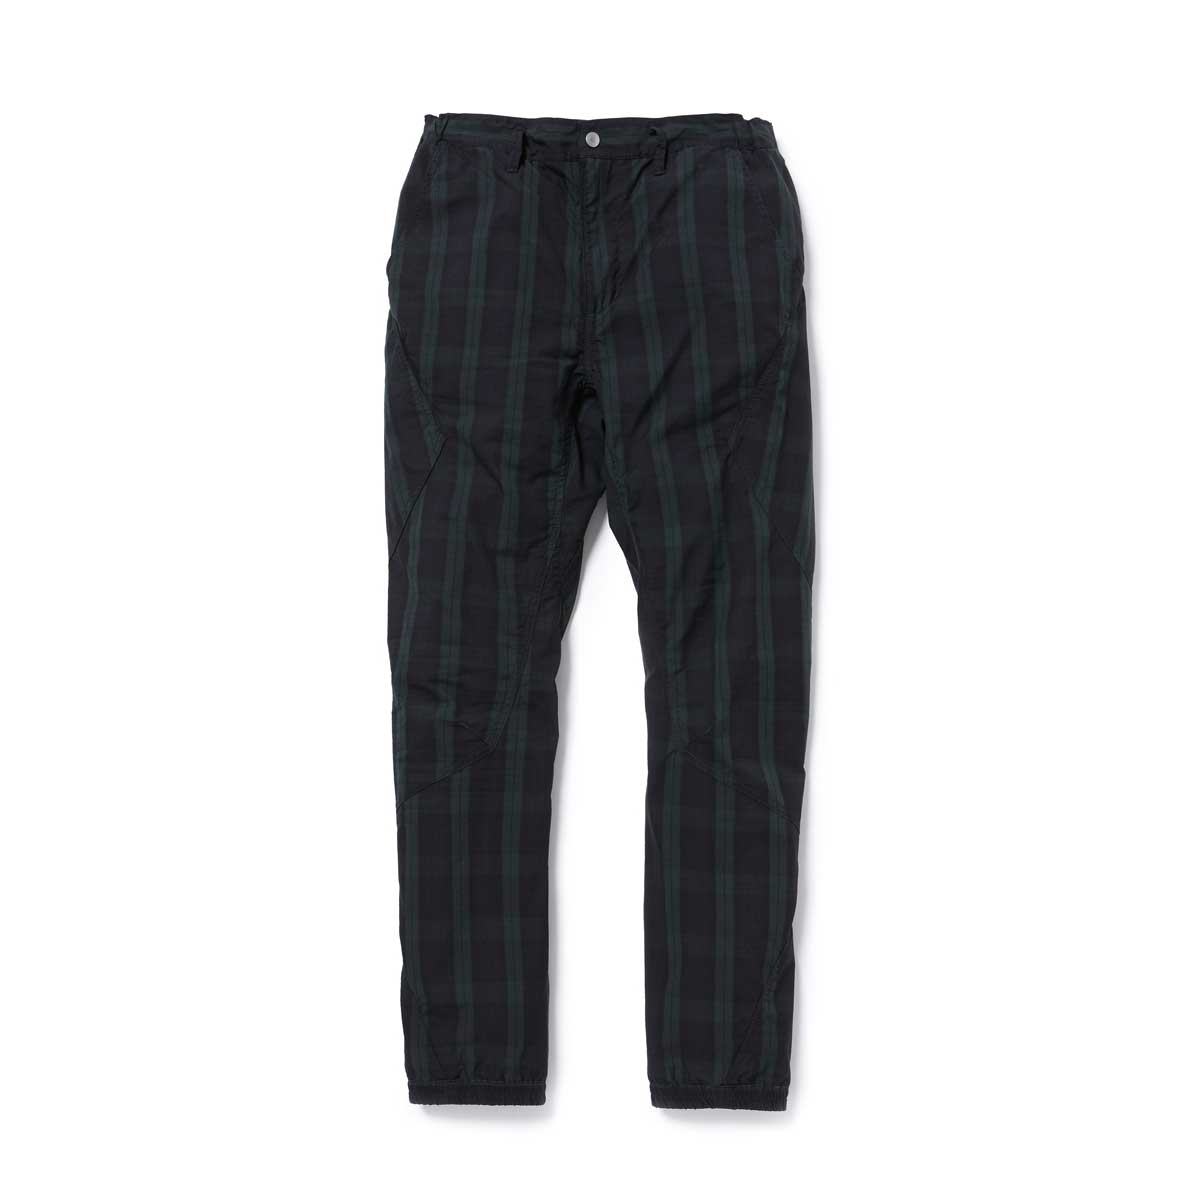 nonnative / CYCLIST EASY RIB PANTS TAPERED FIT C/P RIPSTOP STRETCH COOL MAX -Black Watch